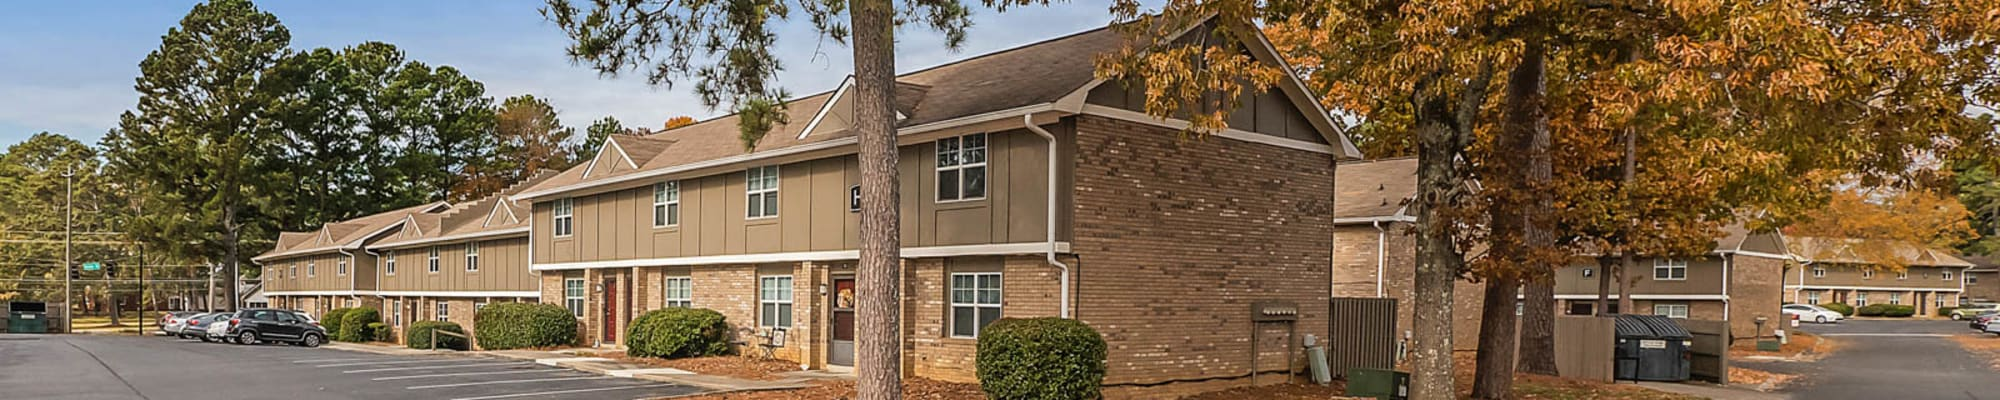 Our properties at S & S Property Management in Nashville, Tennessee